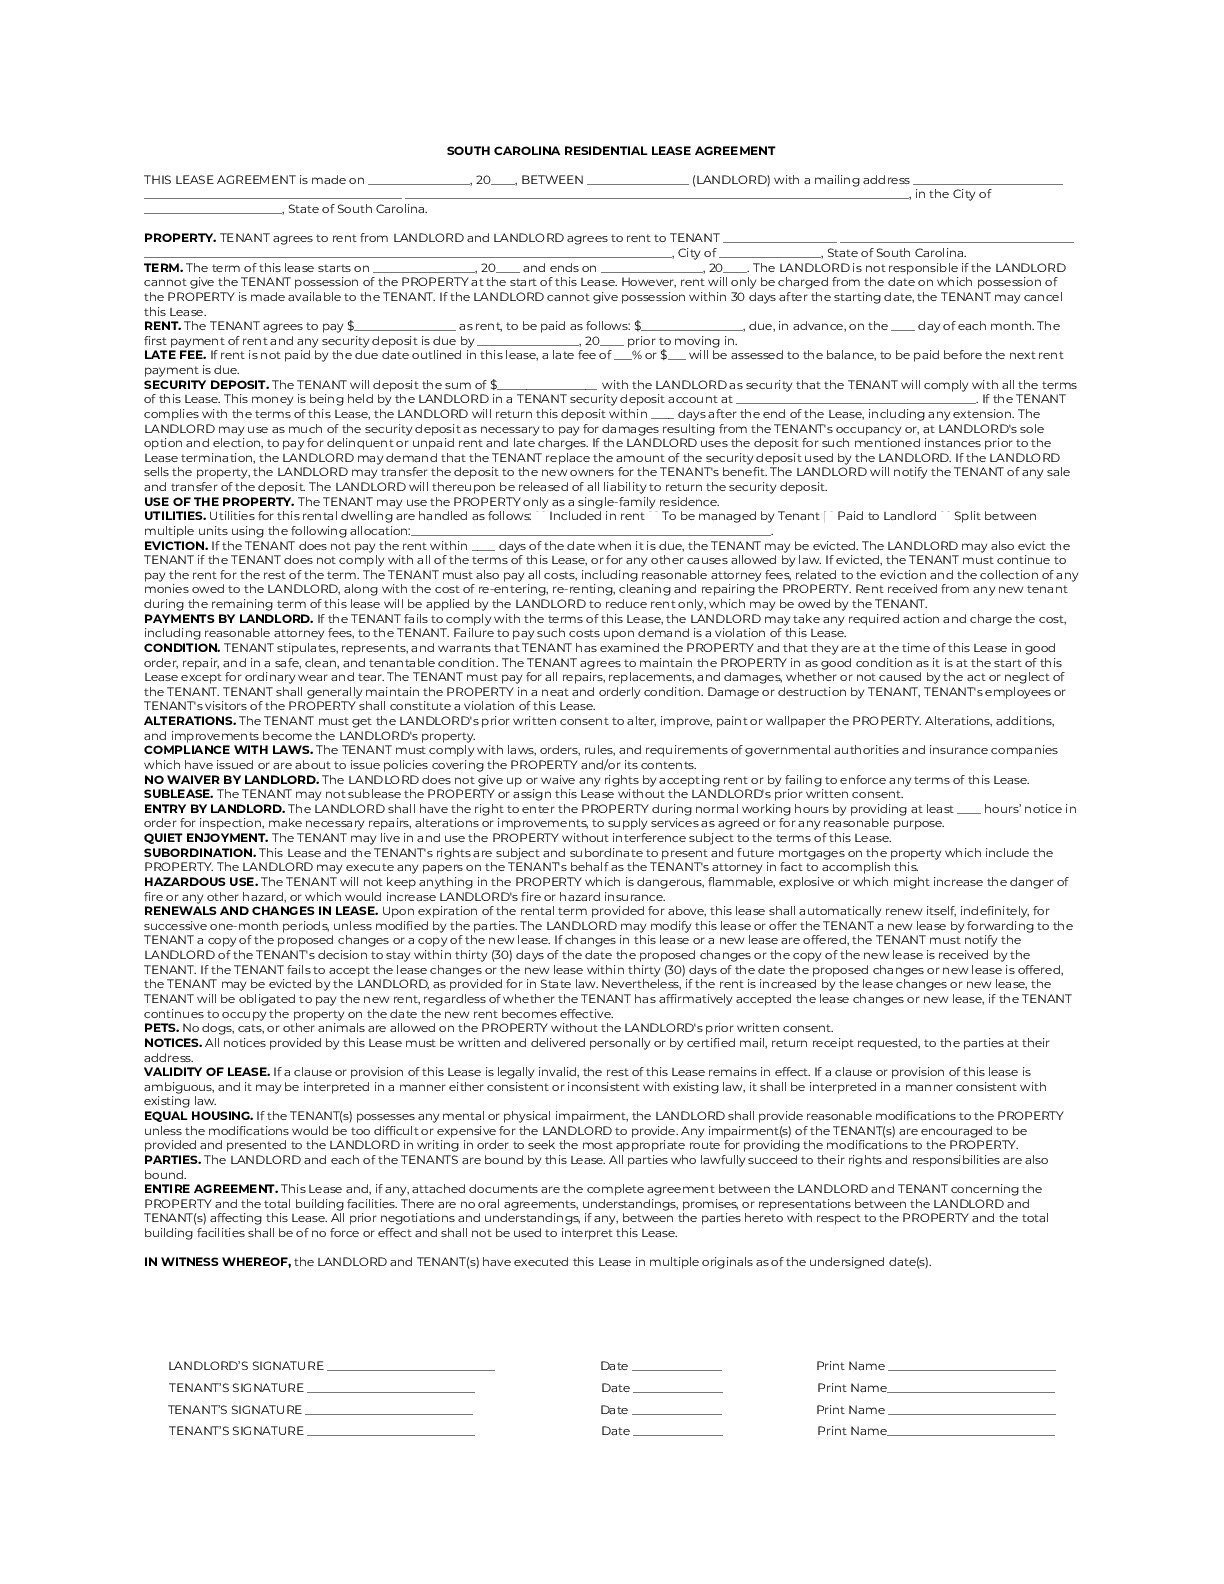 South Carolina Simple Residential Lease Agreement Template sample